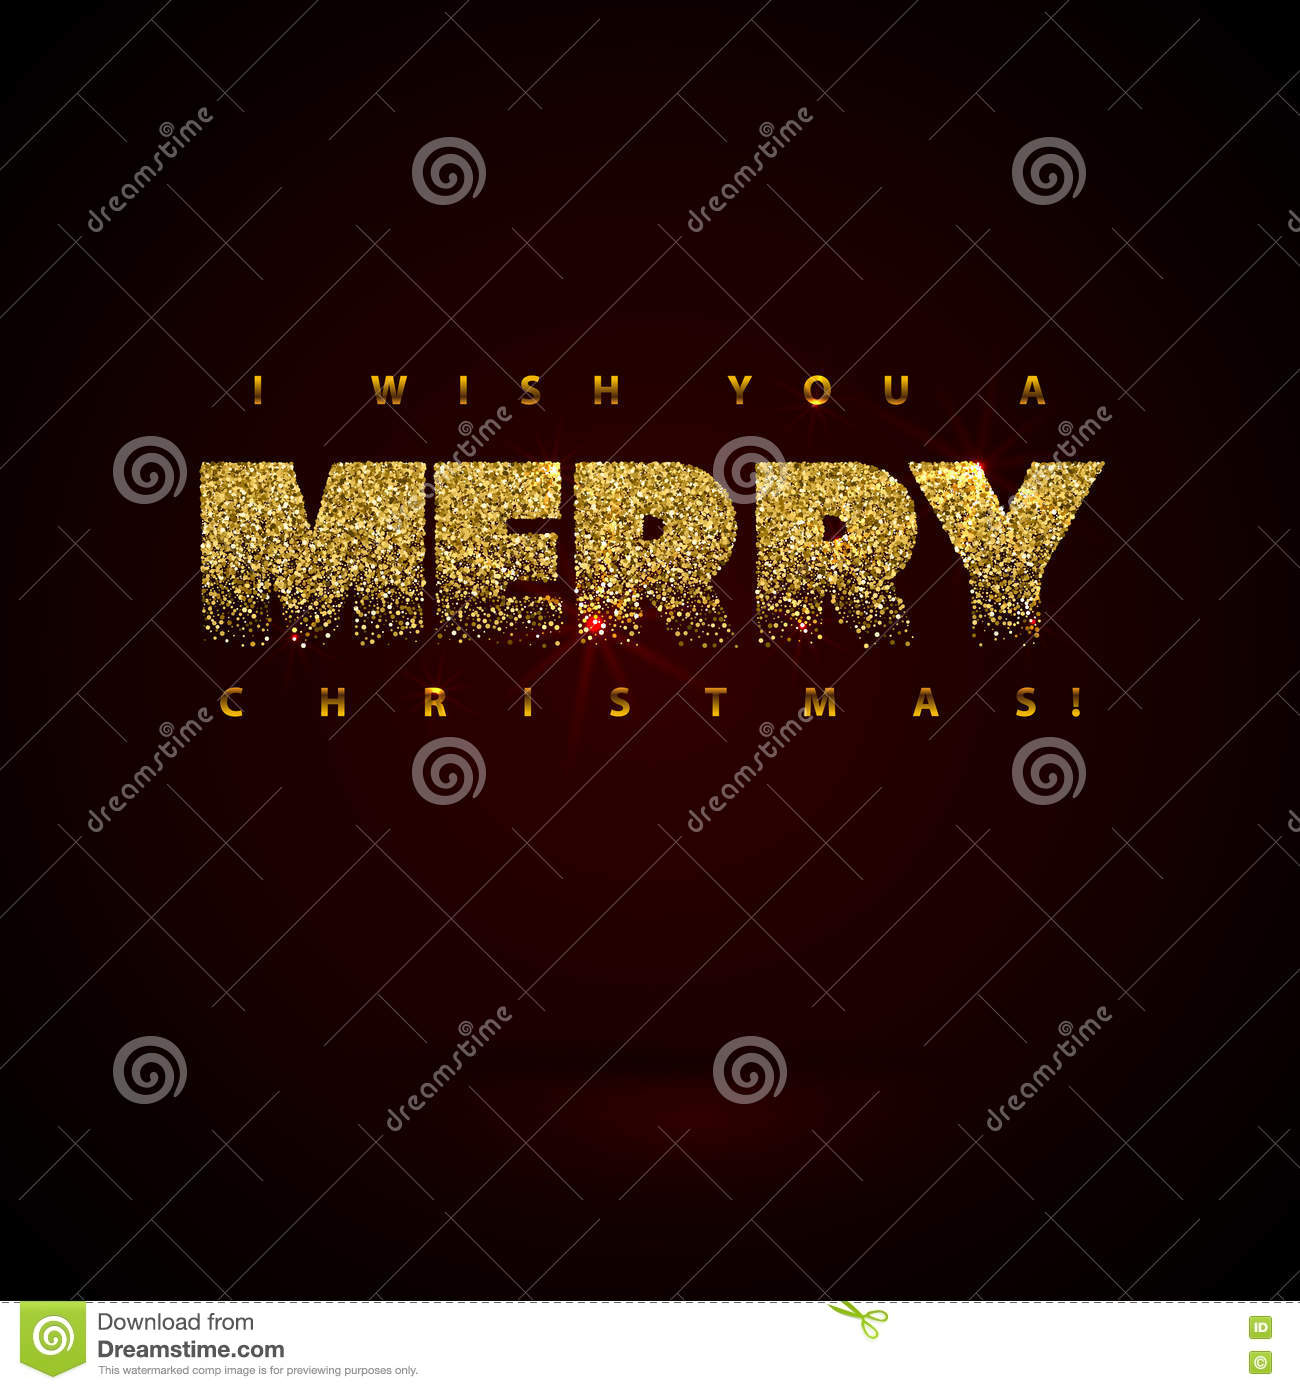 I Wish You A Merry Christmas Card Gold Sparkles On Black Background